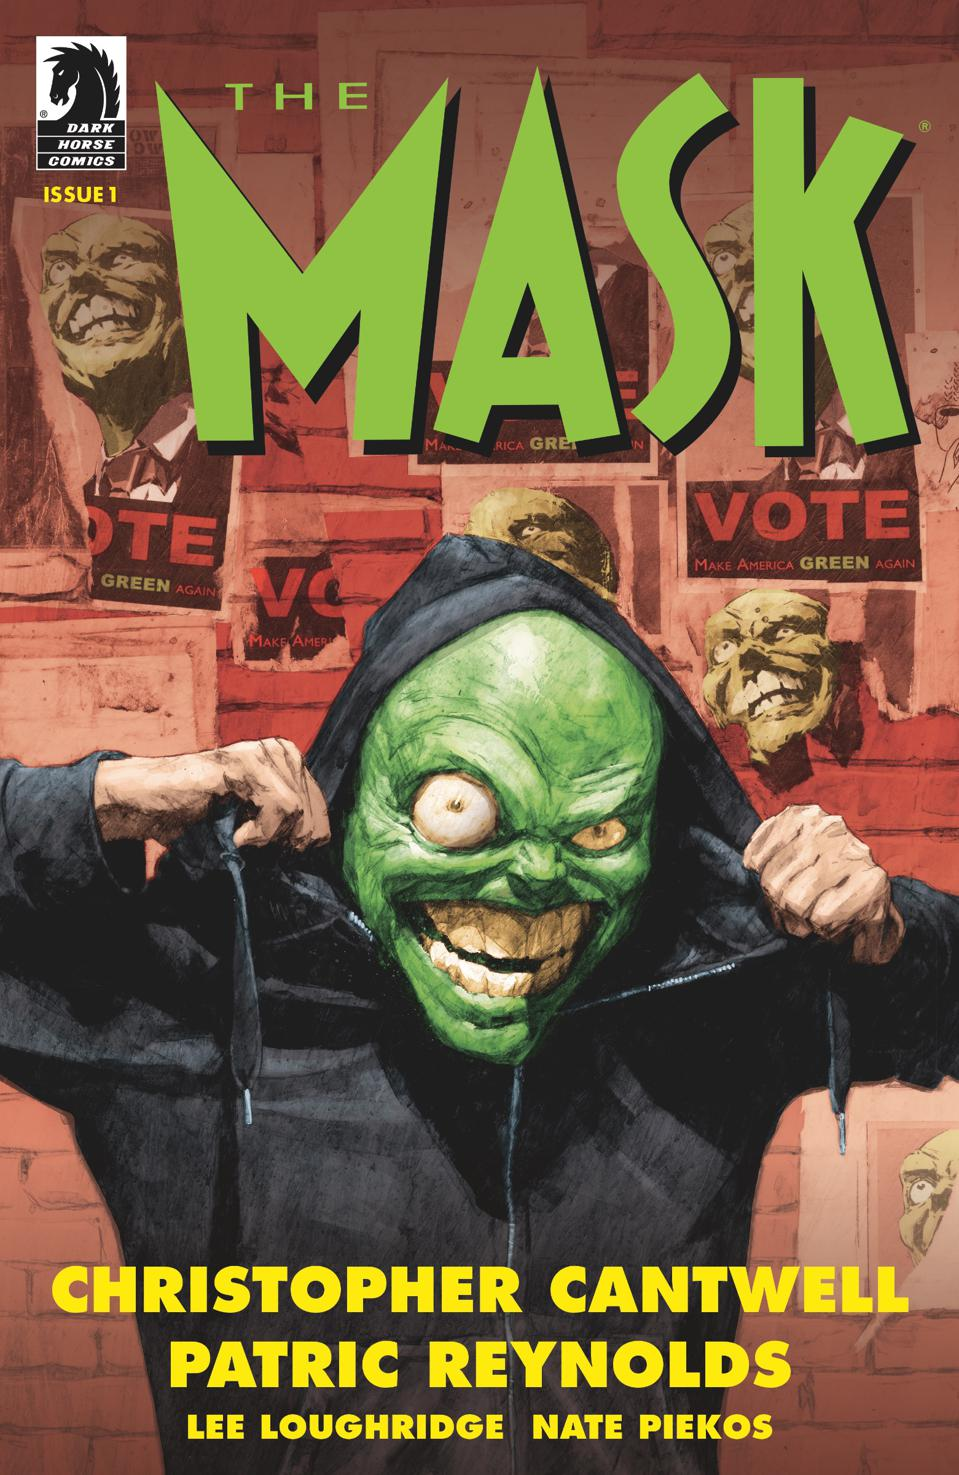 'The Mask' Gets Chocolatey In Provocative First Glimpse At Dark Horse's Revival Comic